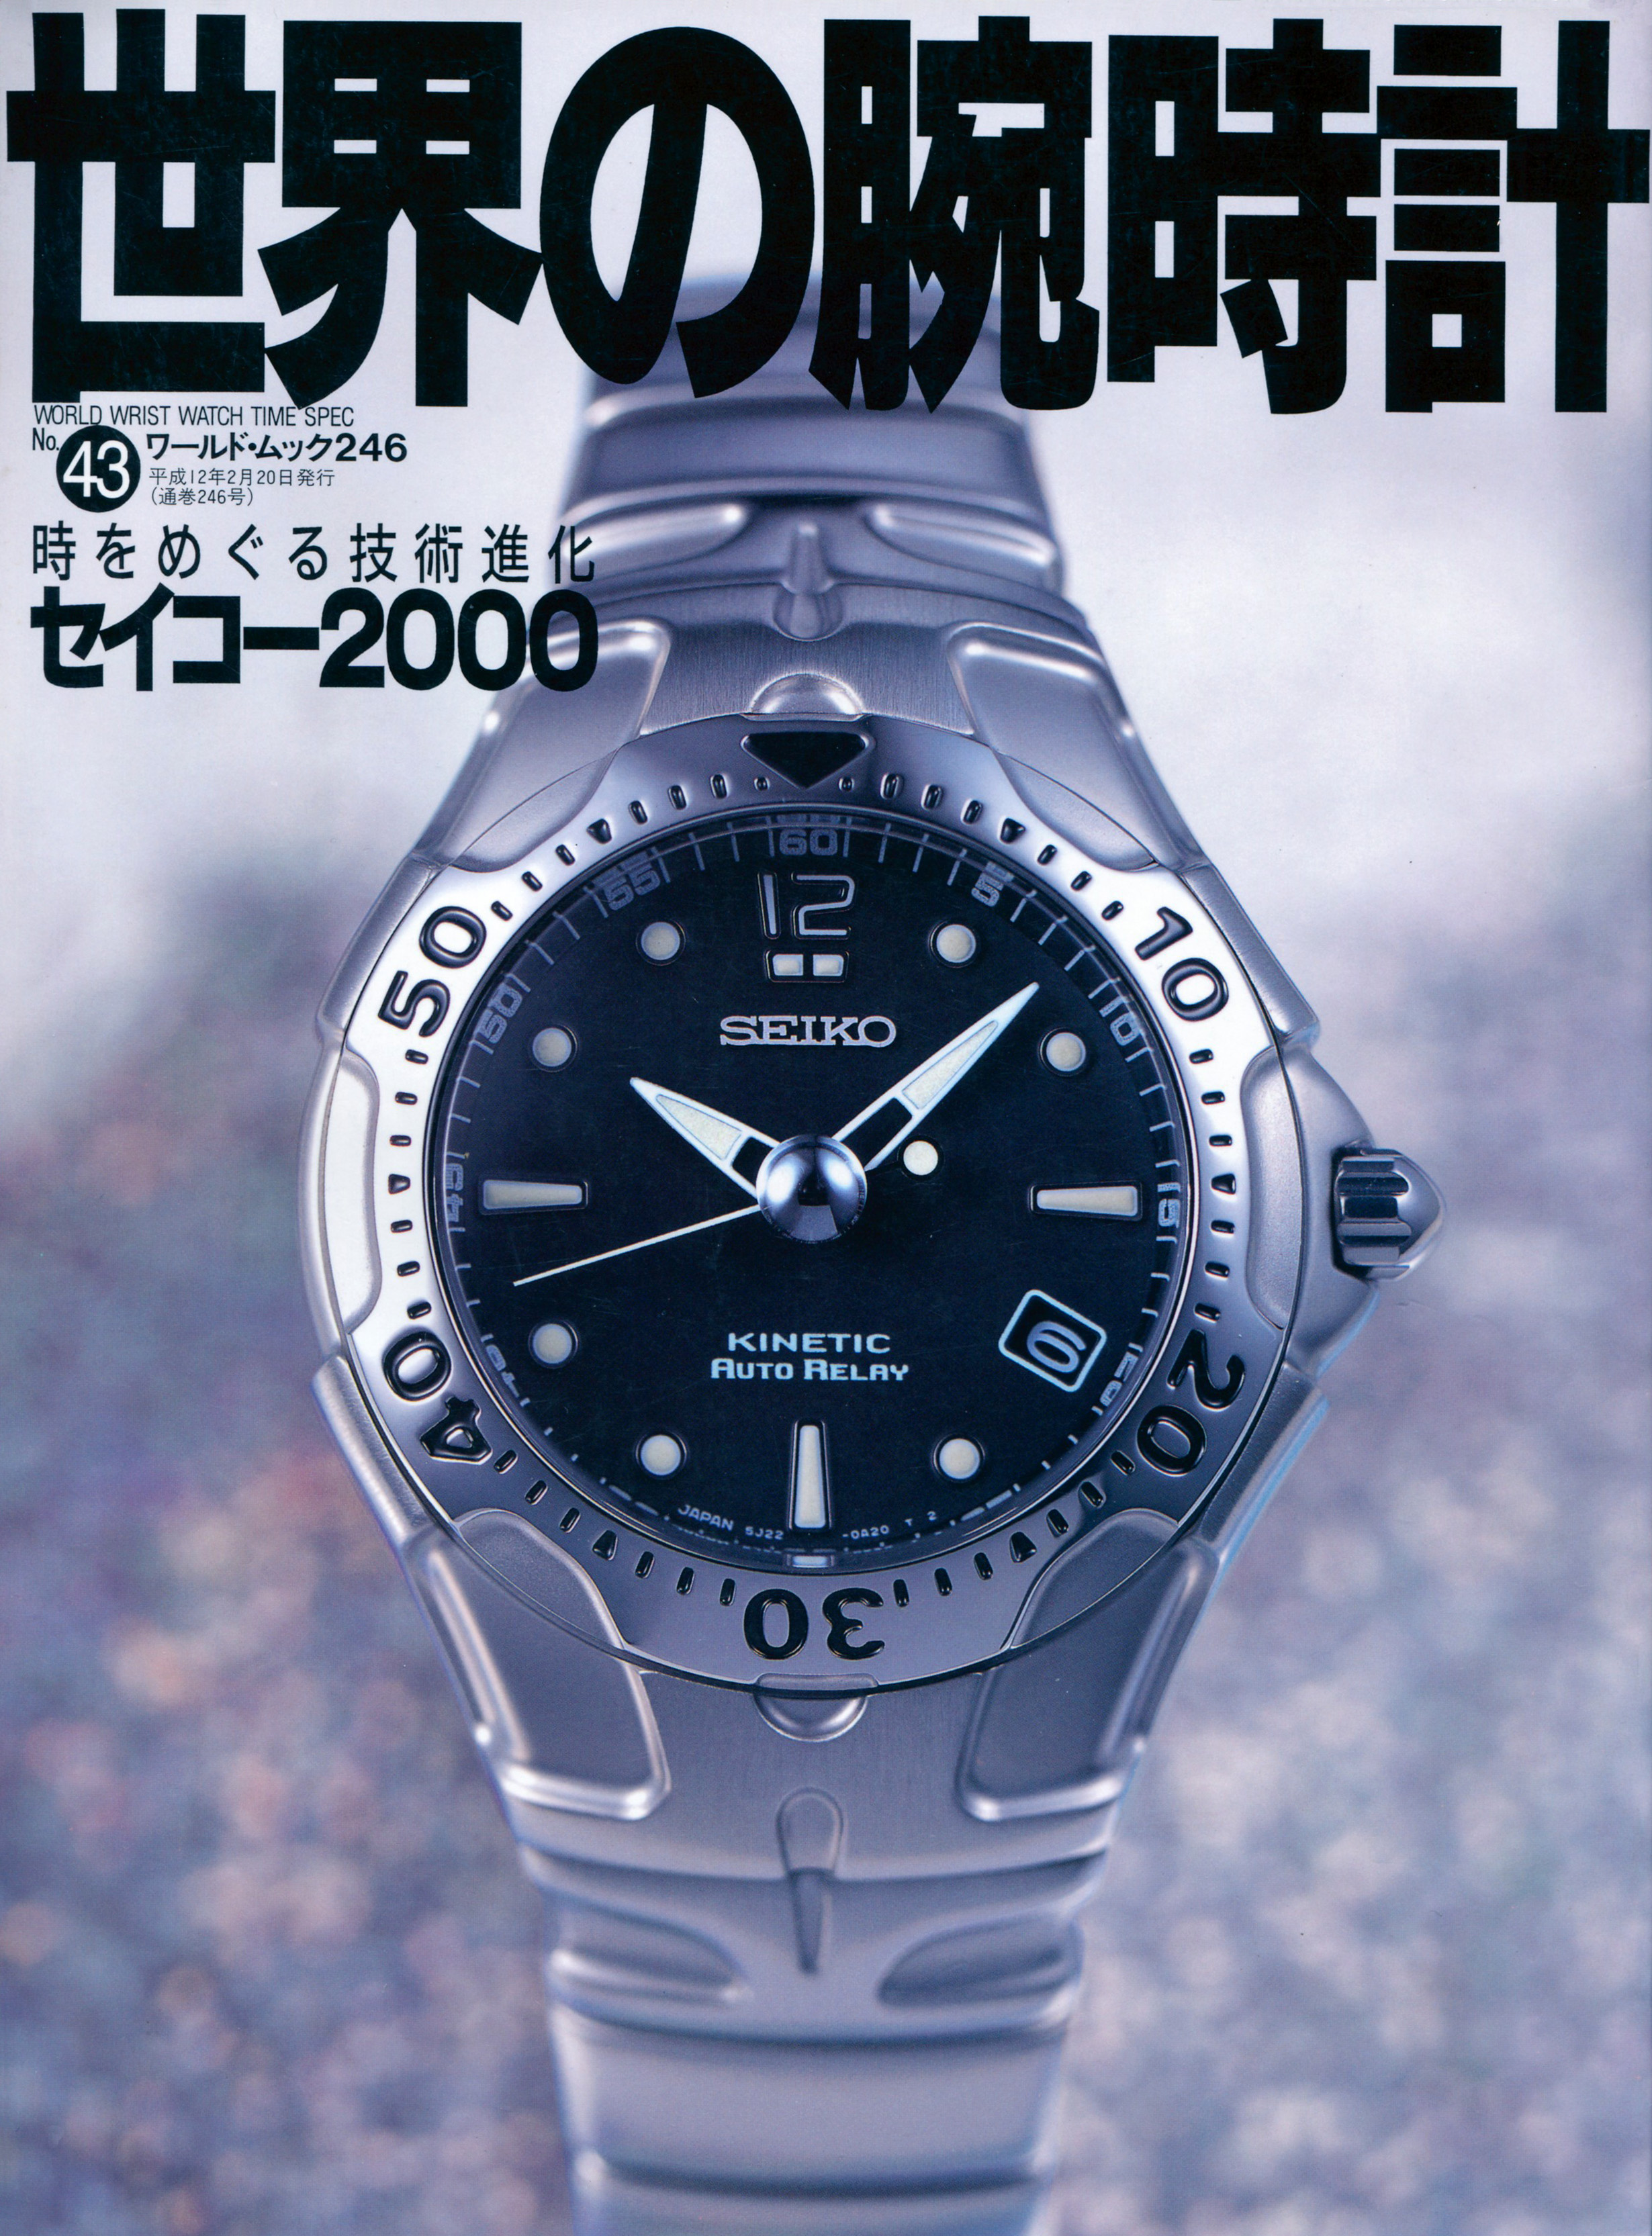 Cover -World Wrist Watch Time Spec No. 43